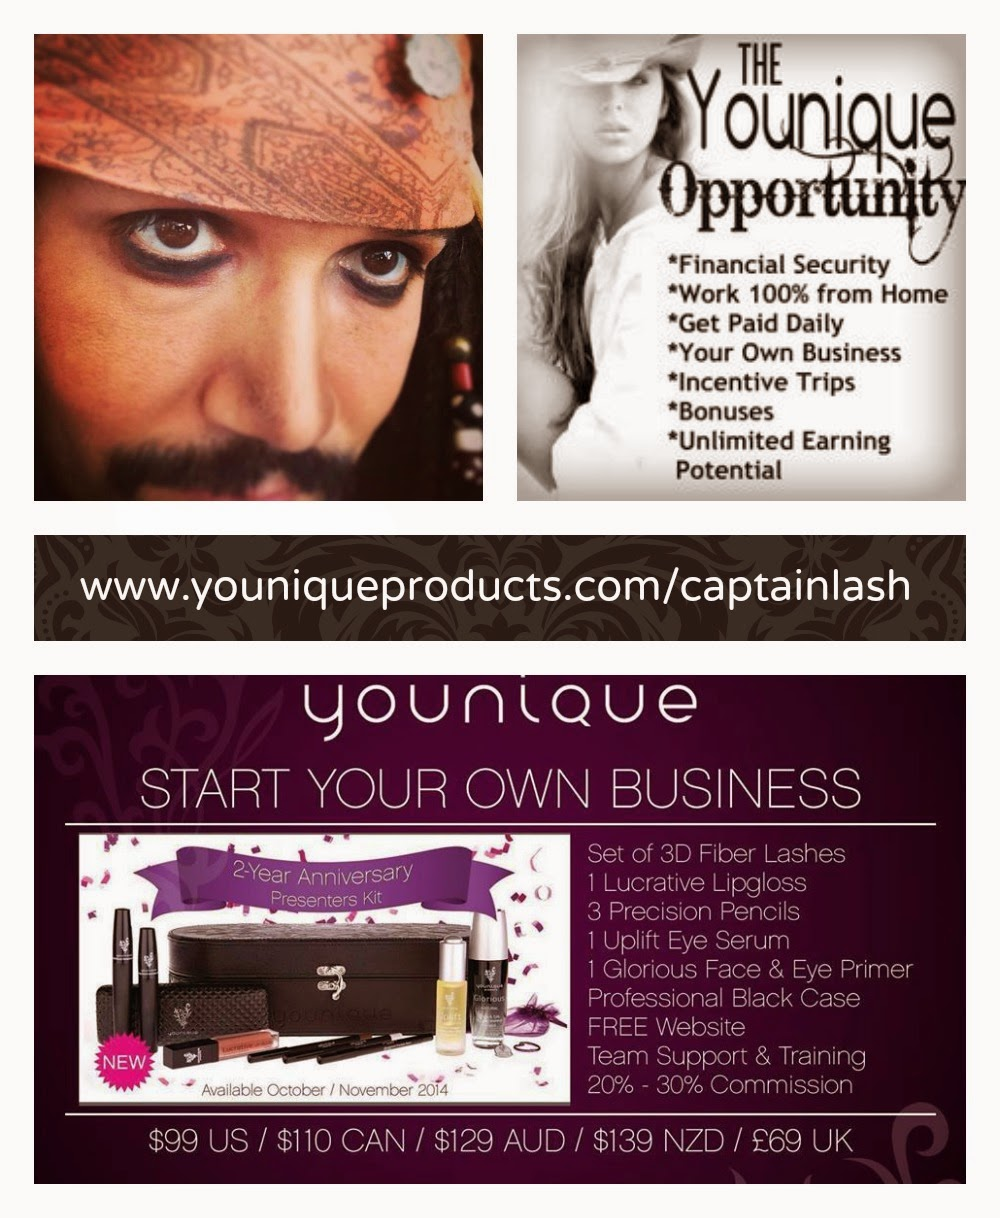 https://www.youniqueproducts.com/captainlash/business/presenterinfo